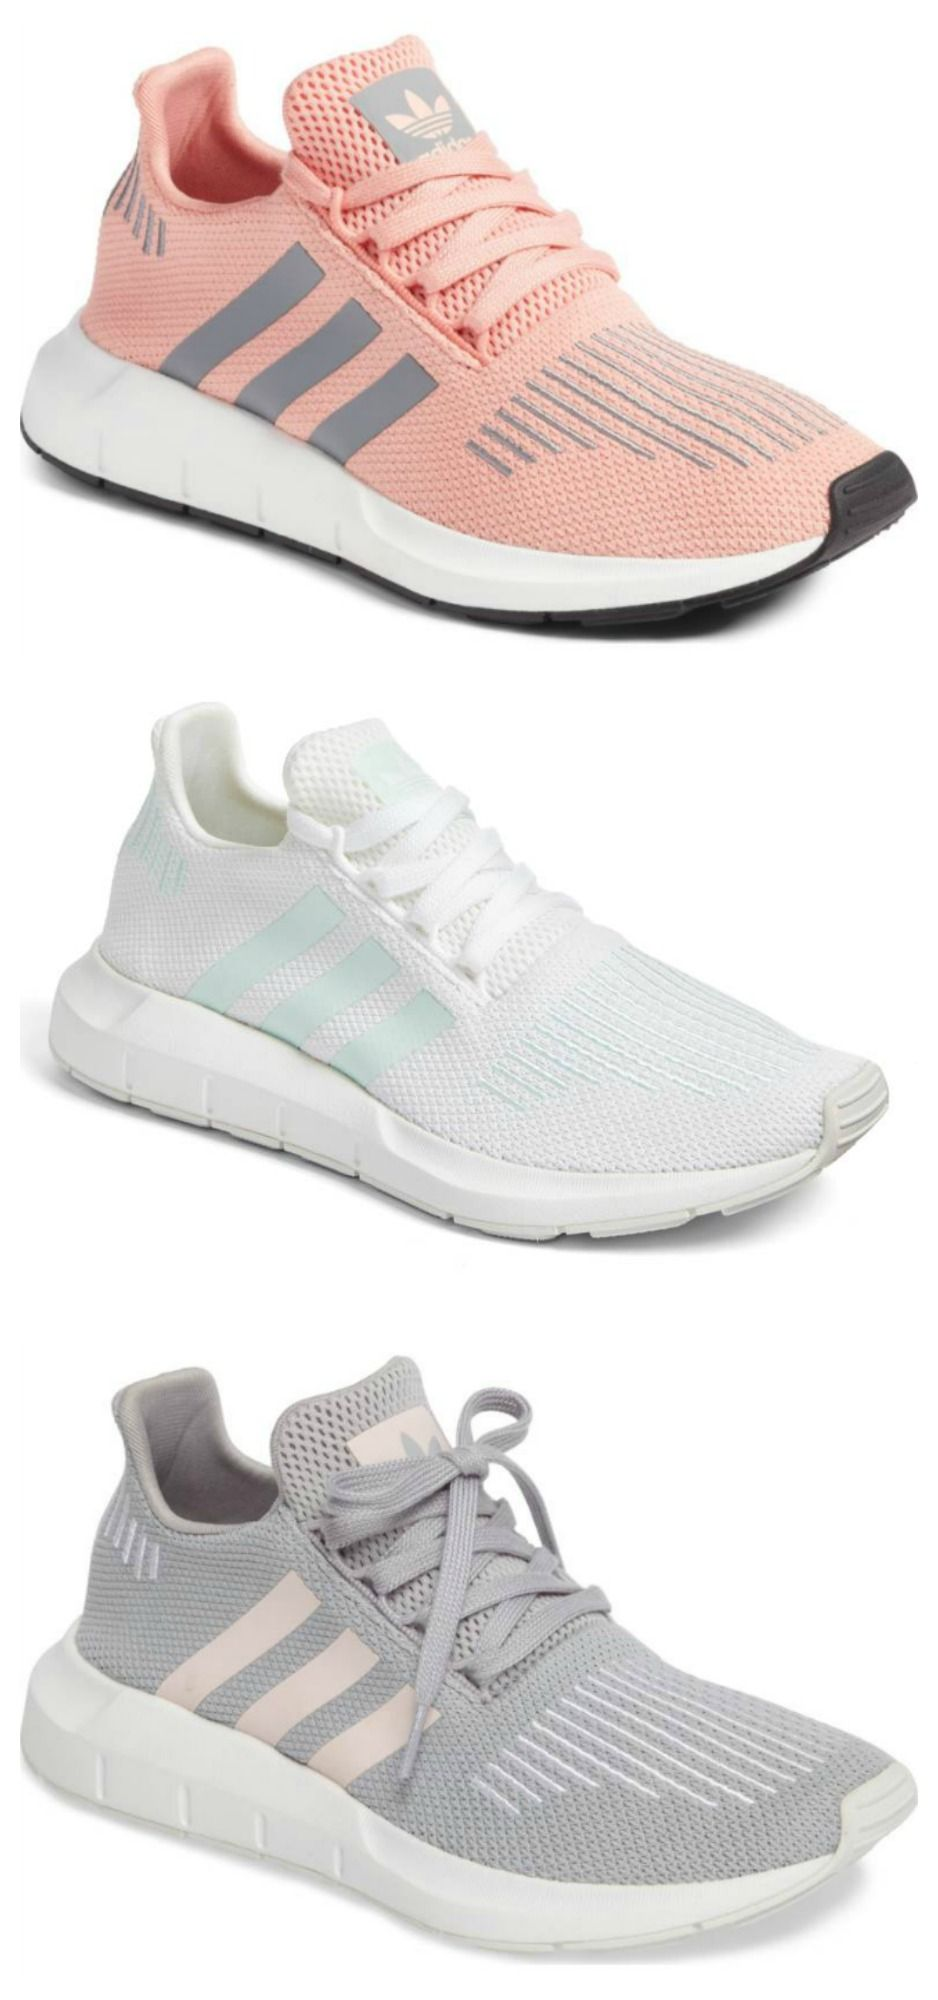 hot sale online 0eddb 51d41 Adidas Swift Run Sneakers via Nordstrom   sneaker, tennis shoe, shoes,  footwear, athletic, athlete, activewear, workout, pink, grey, cute shoes,  shopping, ...